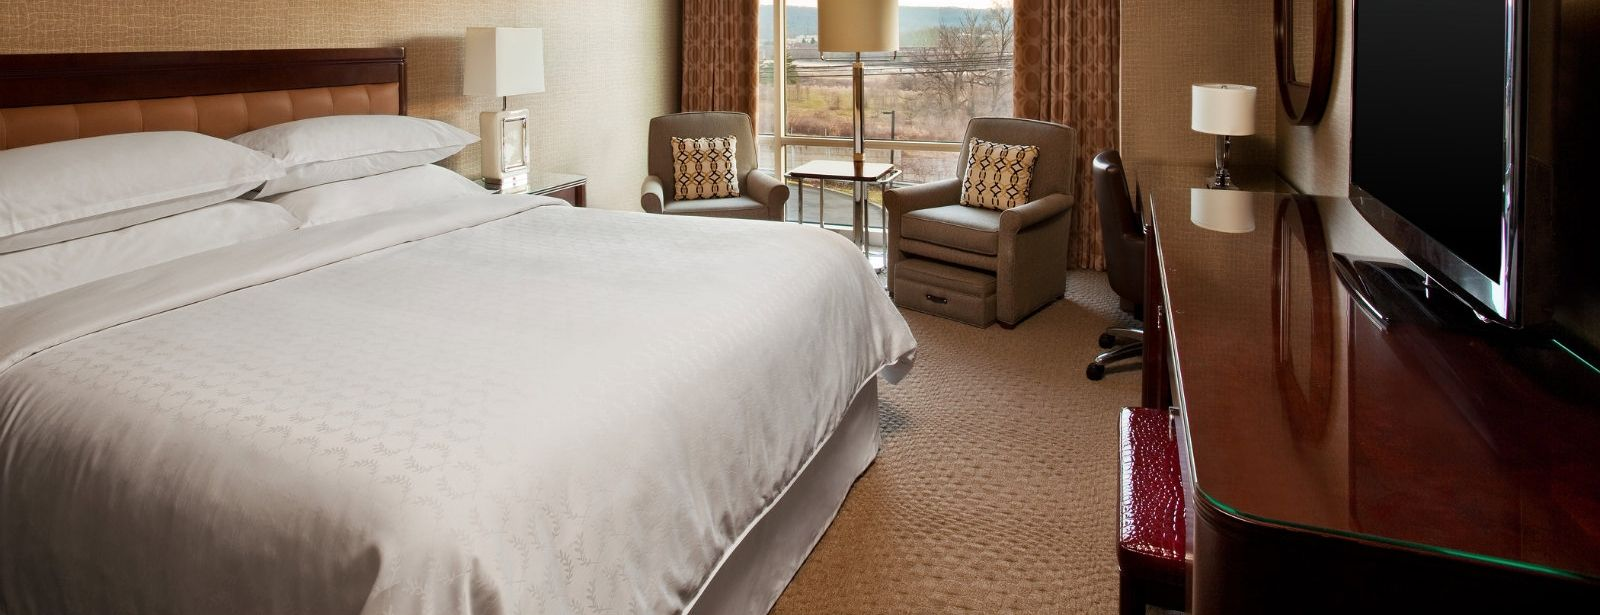 Sheraton Club Guest Room | Sheraton Valley Forge Hotel